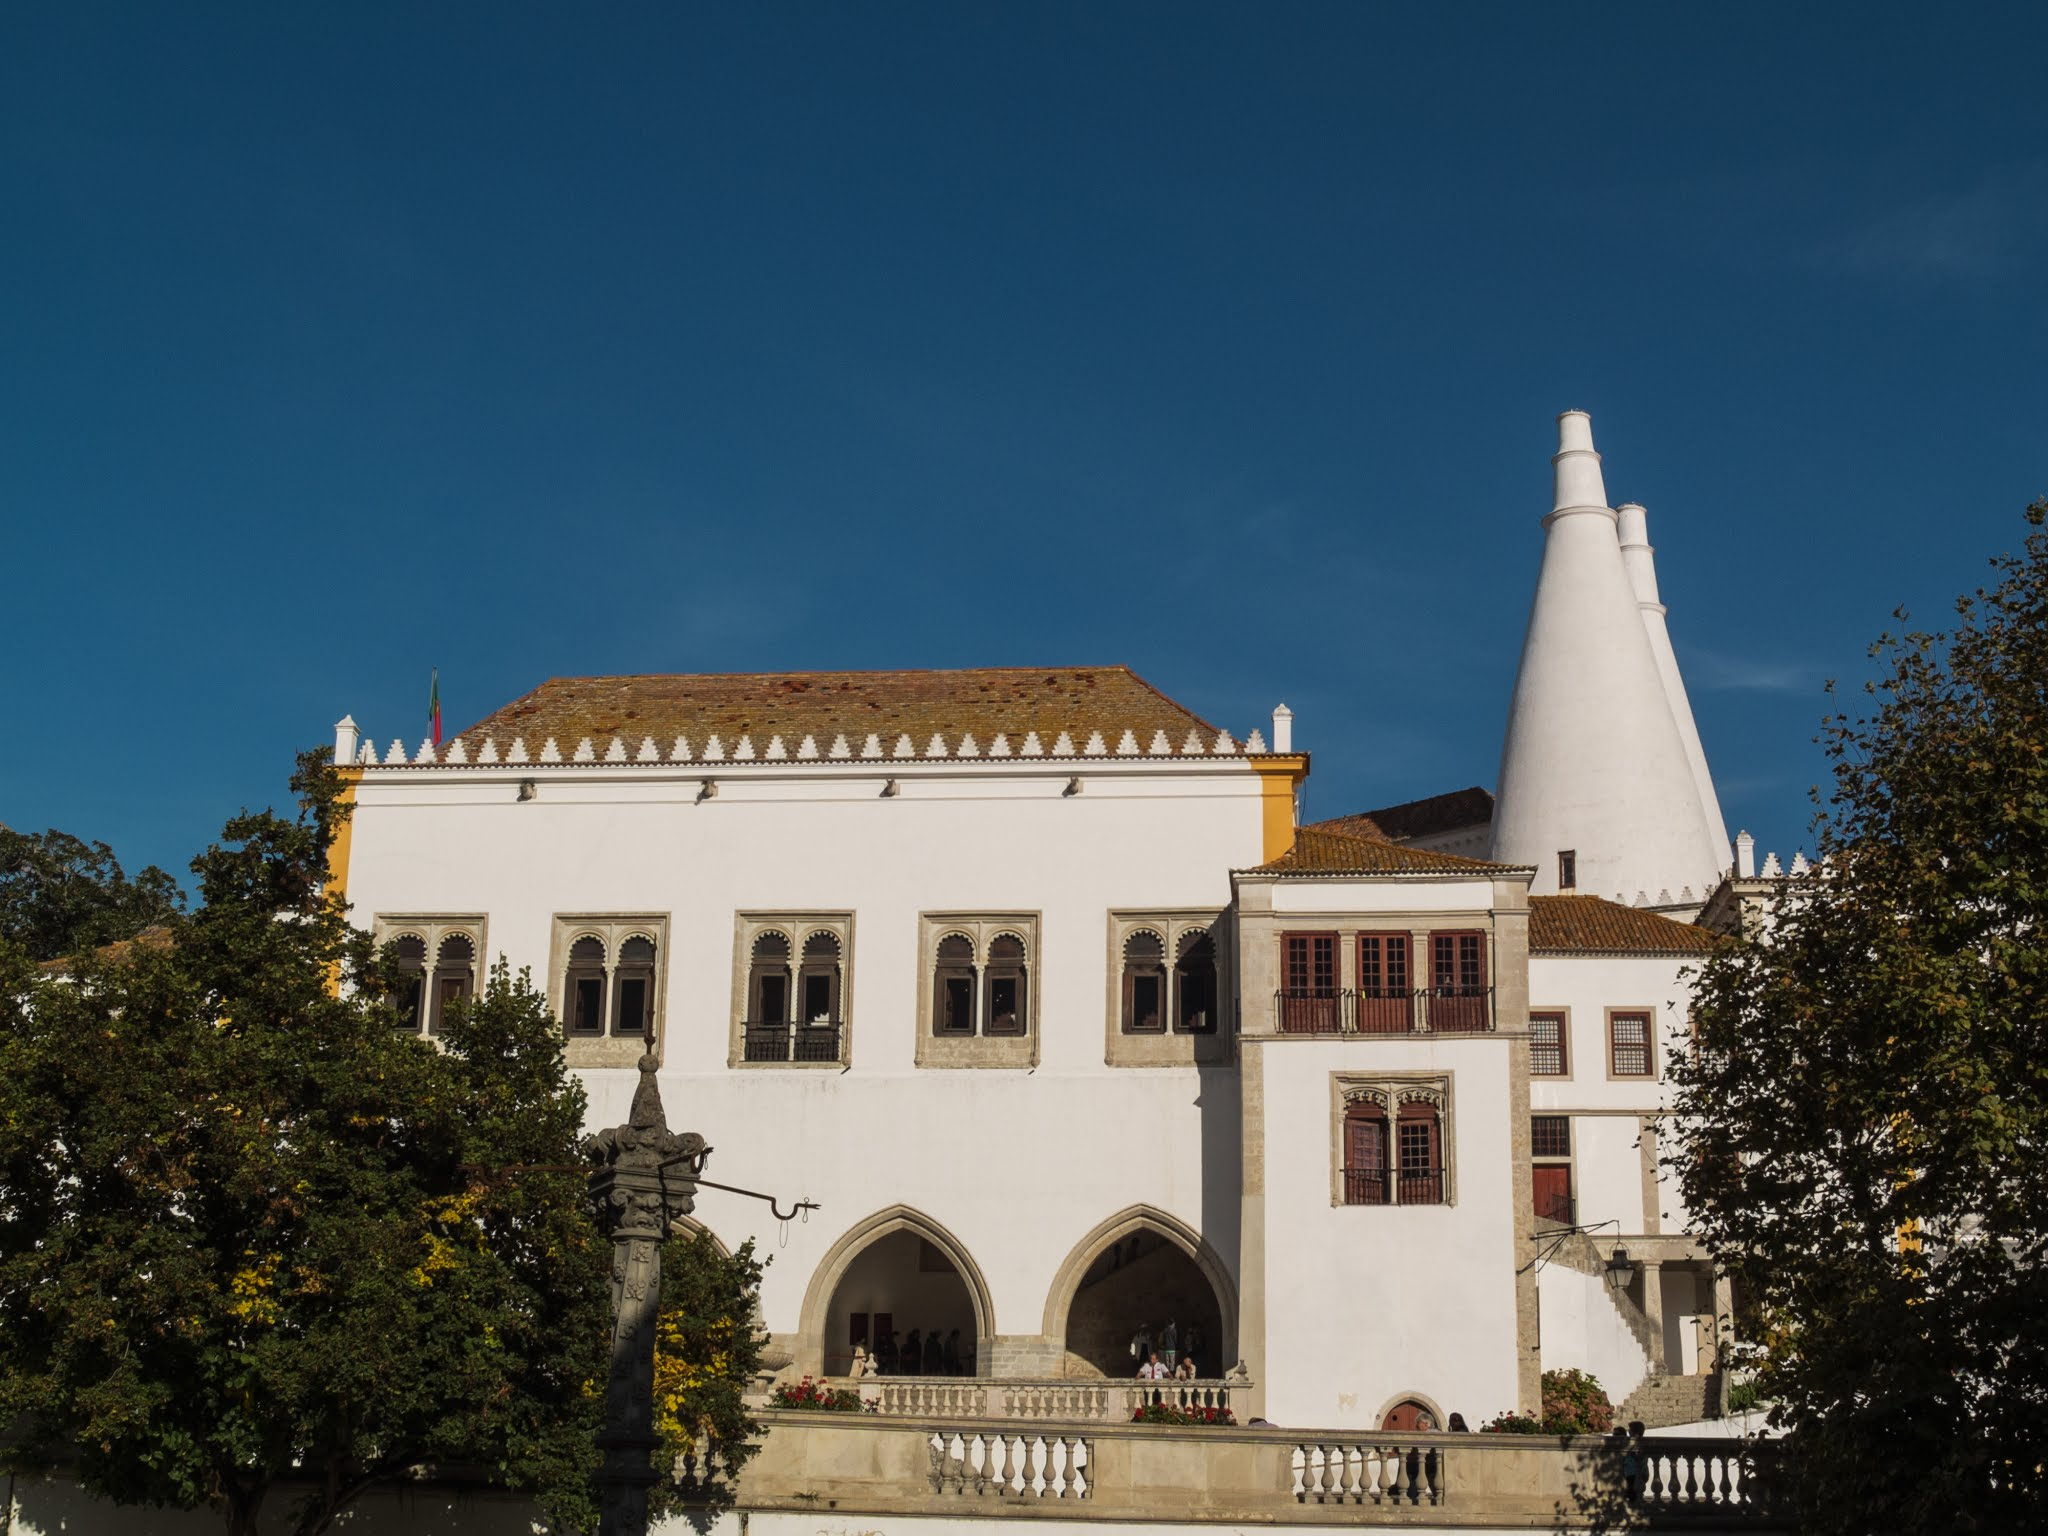 View of the National Palace of Sintra against a blue sky.